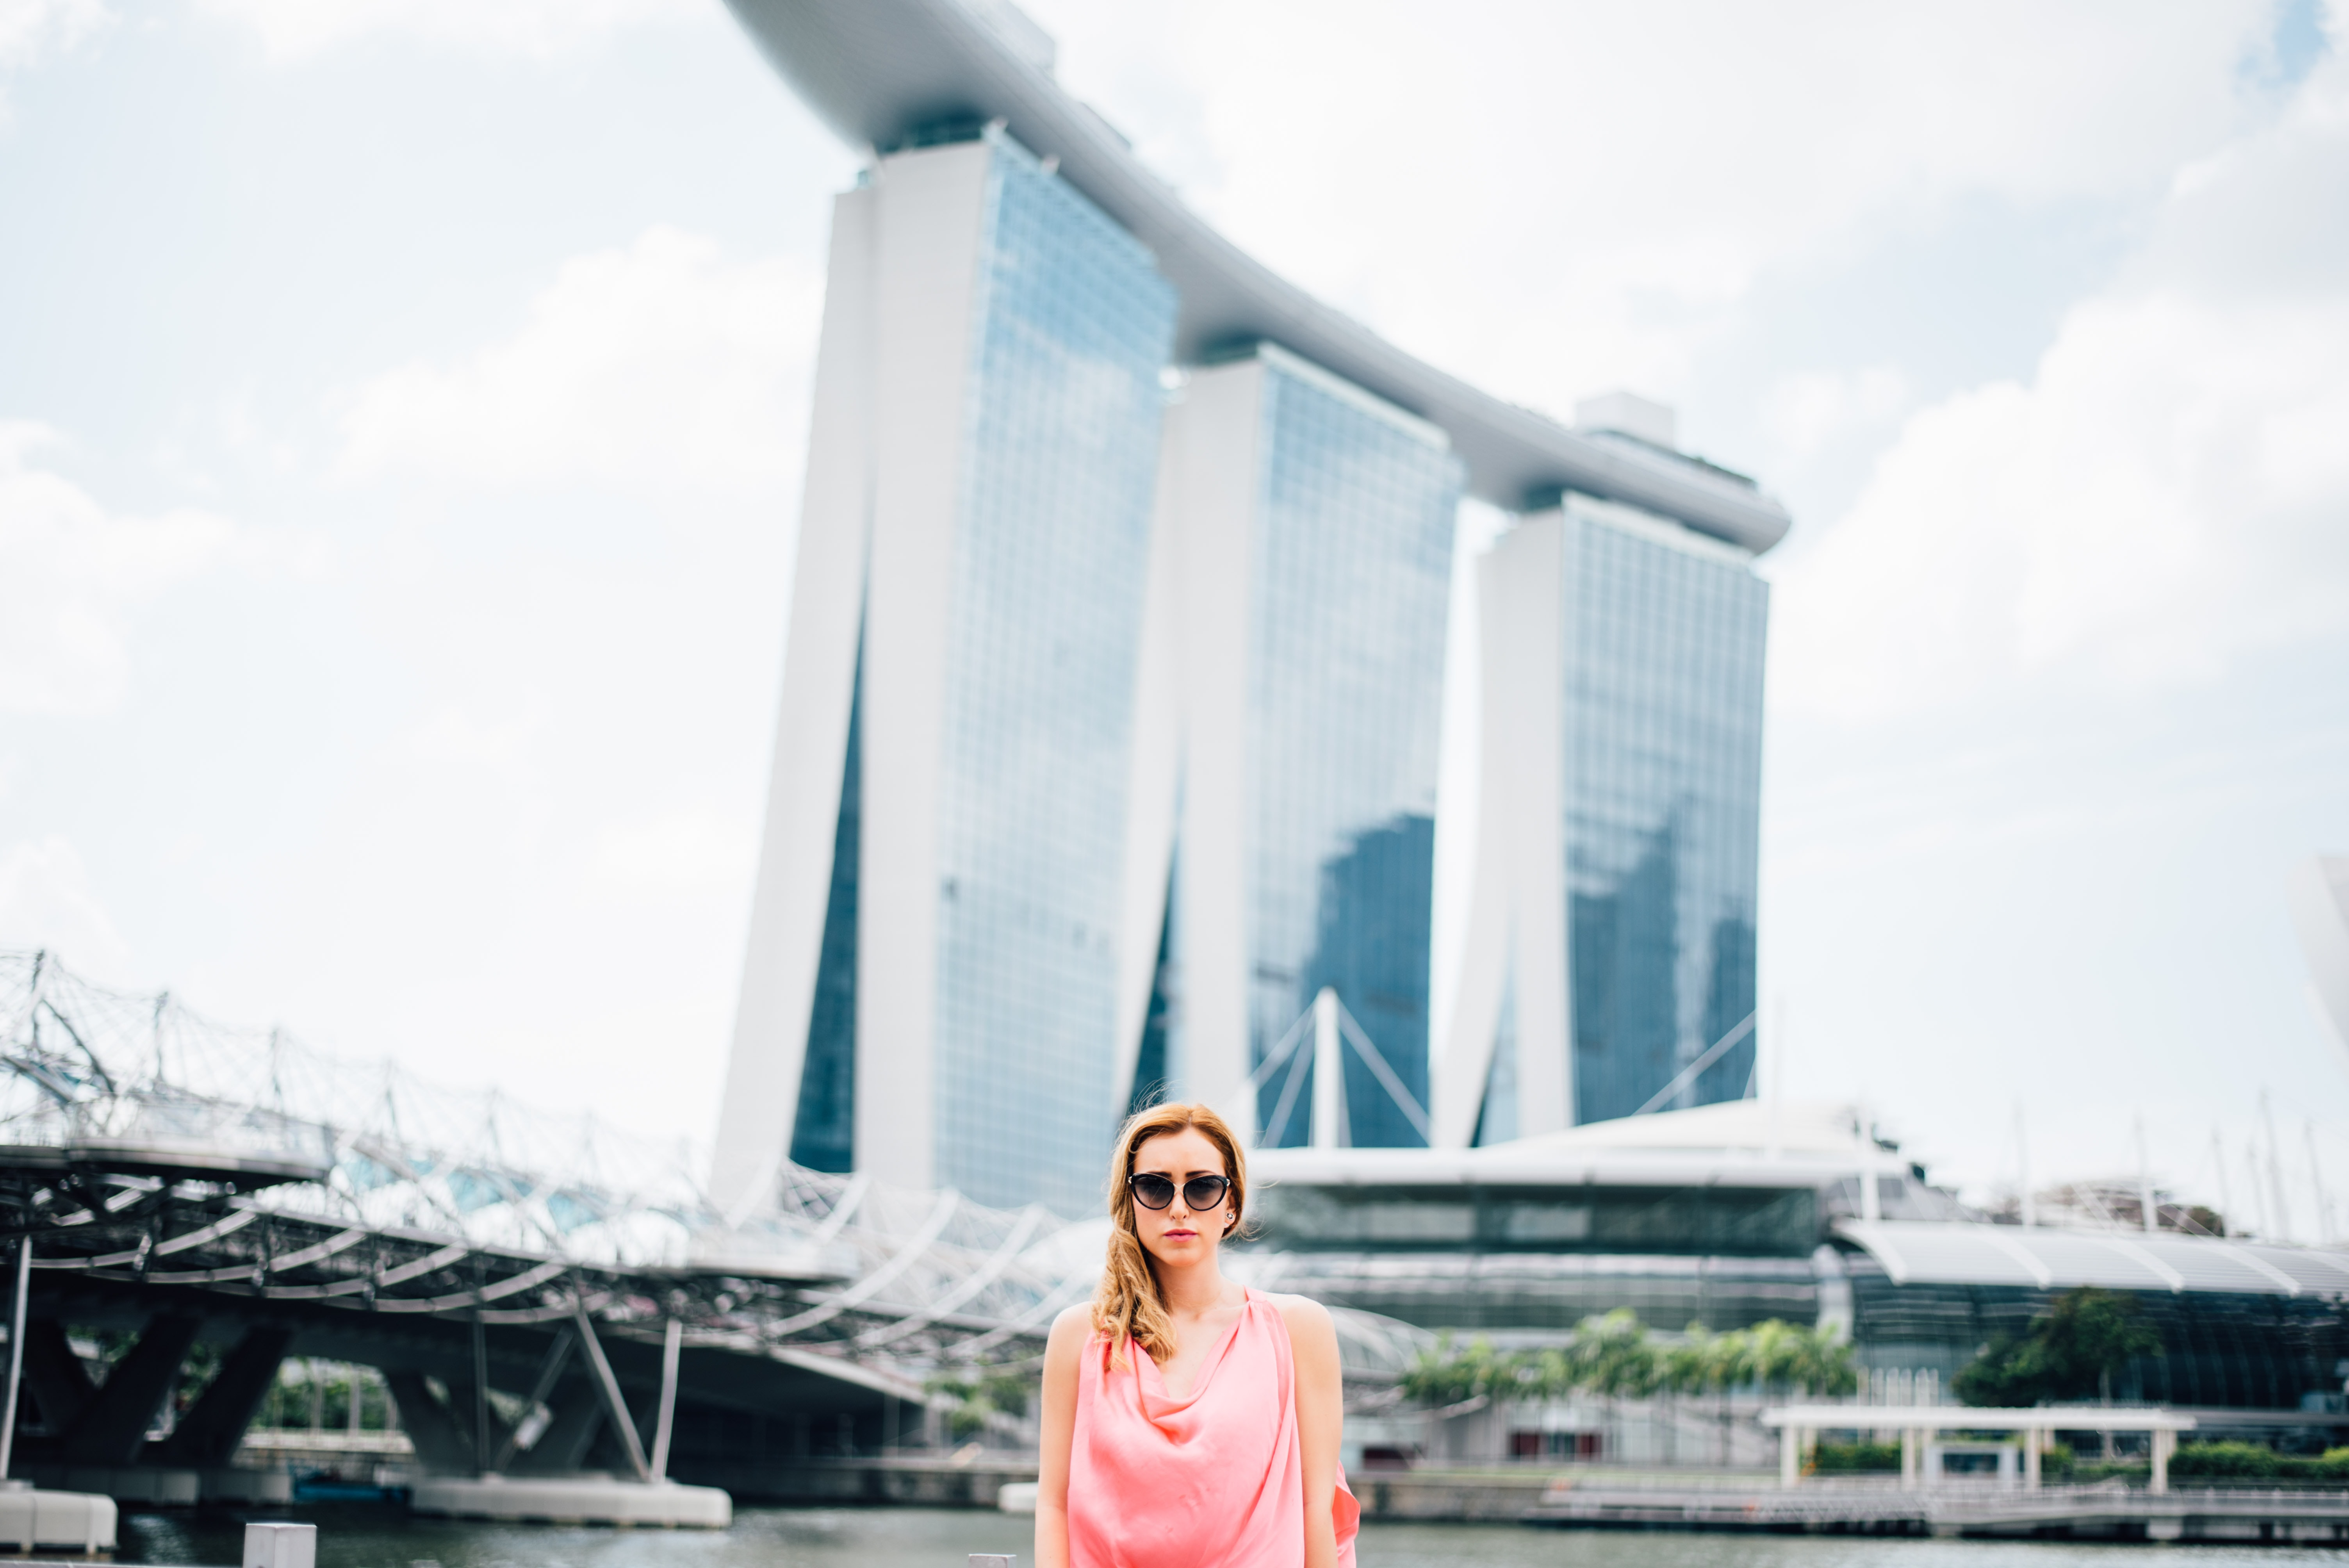 A girl wearing a pink dress and black sunglasses standing in front of Marina Bay Sands in Singapore